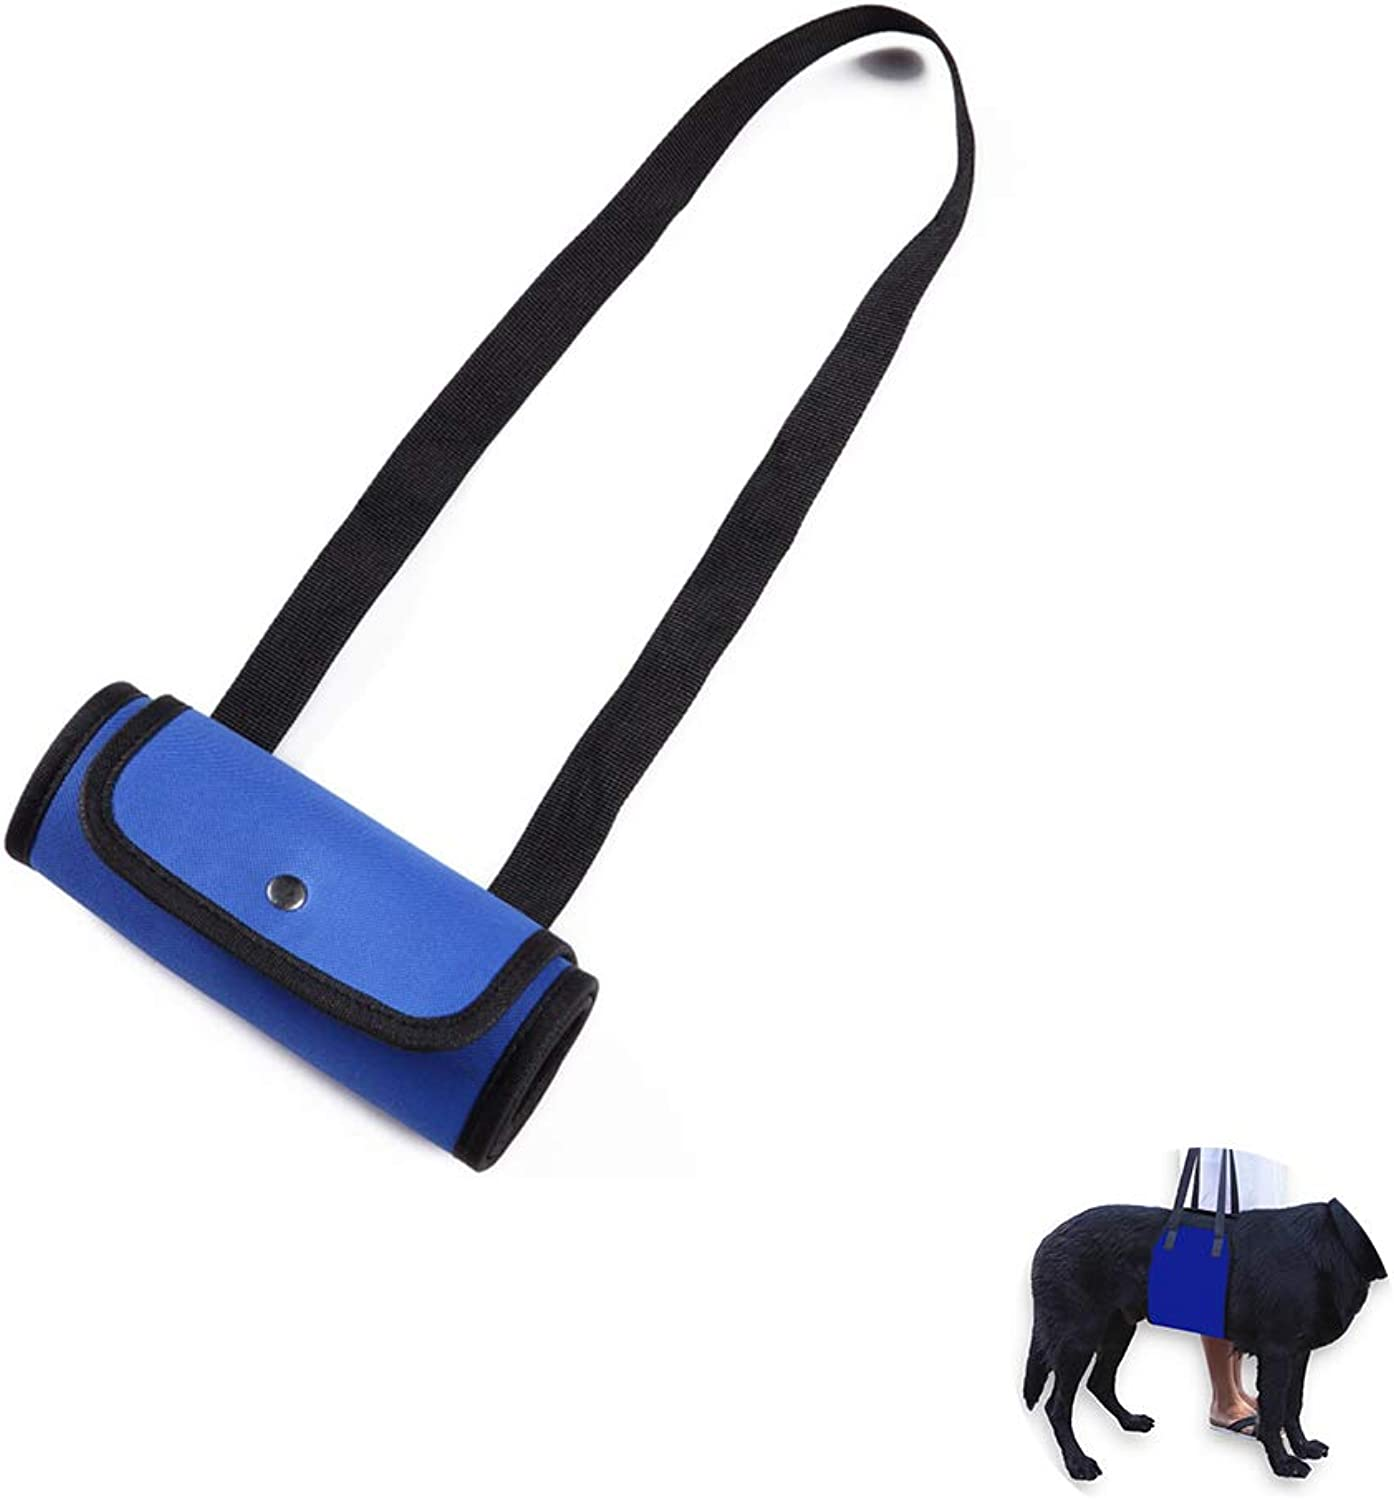 Dog Lifting Harness, Dog Lift Canines Aid Assist Sling for Disabled, Injured, Elderly Pets Dogs, Help with Mobility to Stand Up, Climb Stairs and More(bluee),L